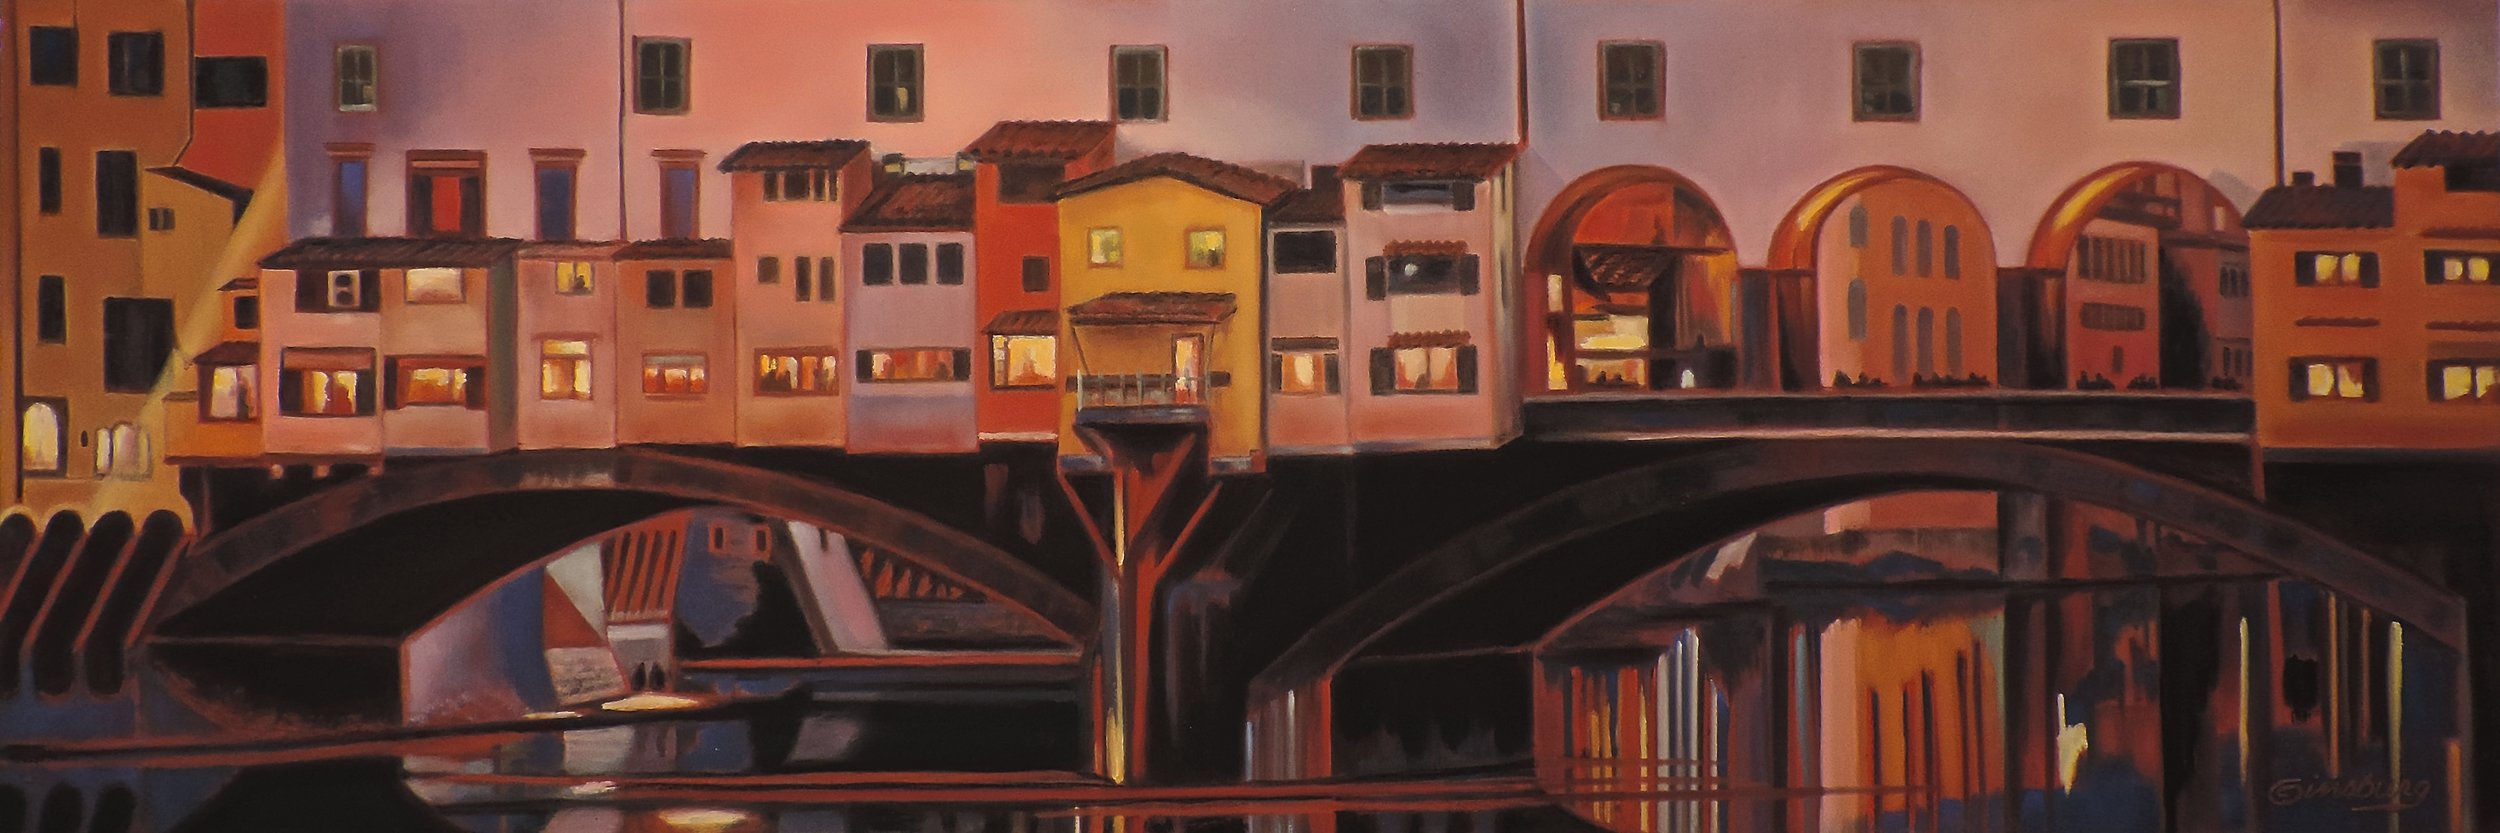 """ponte vecchio night reflections"", florence (fierenze), italy  PanPastel® Cheri GInsburg ©"